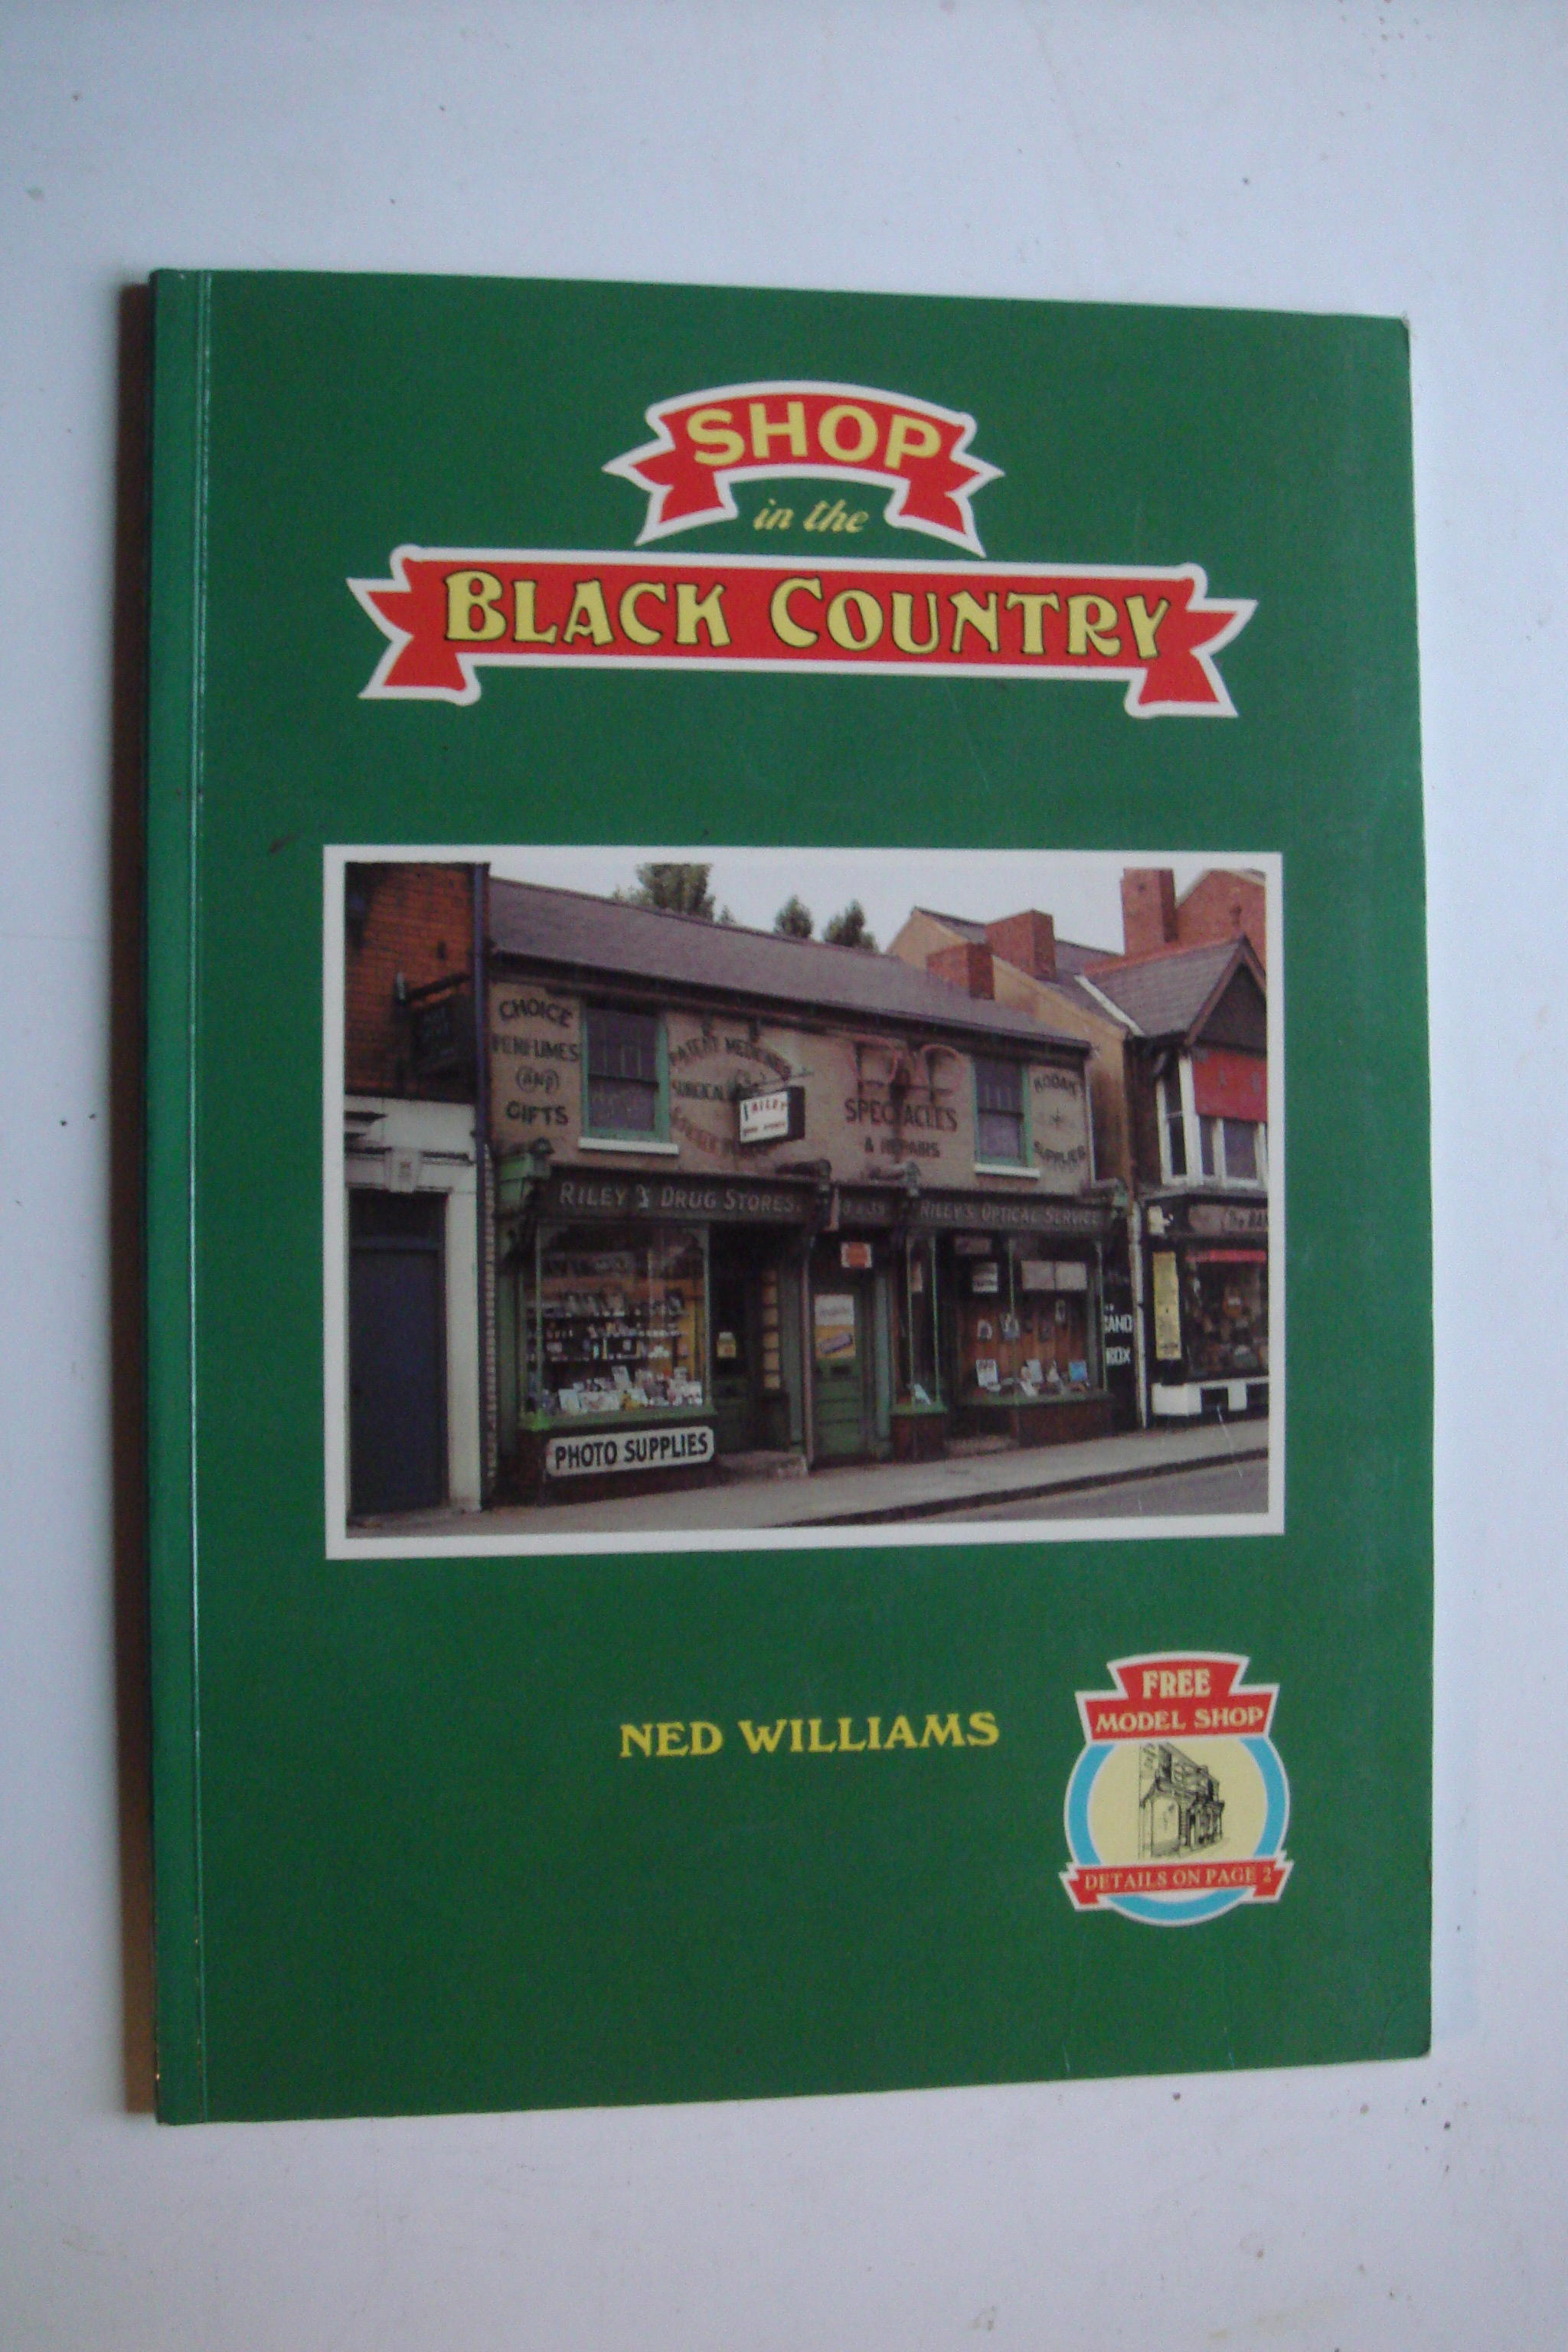 Black Country Shops